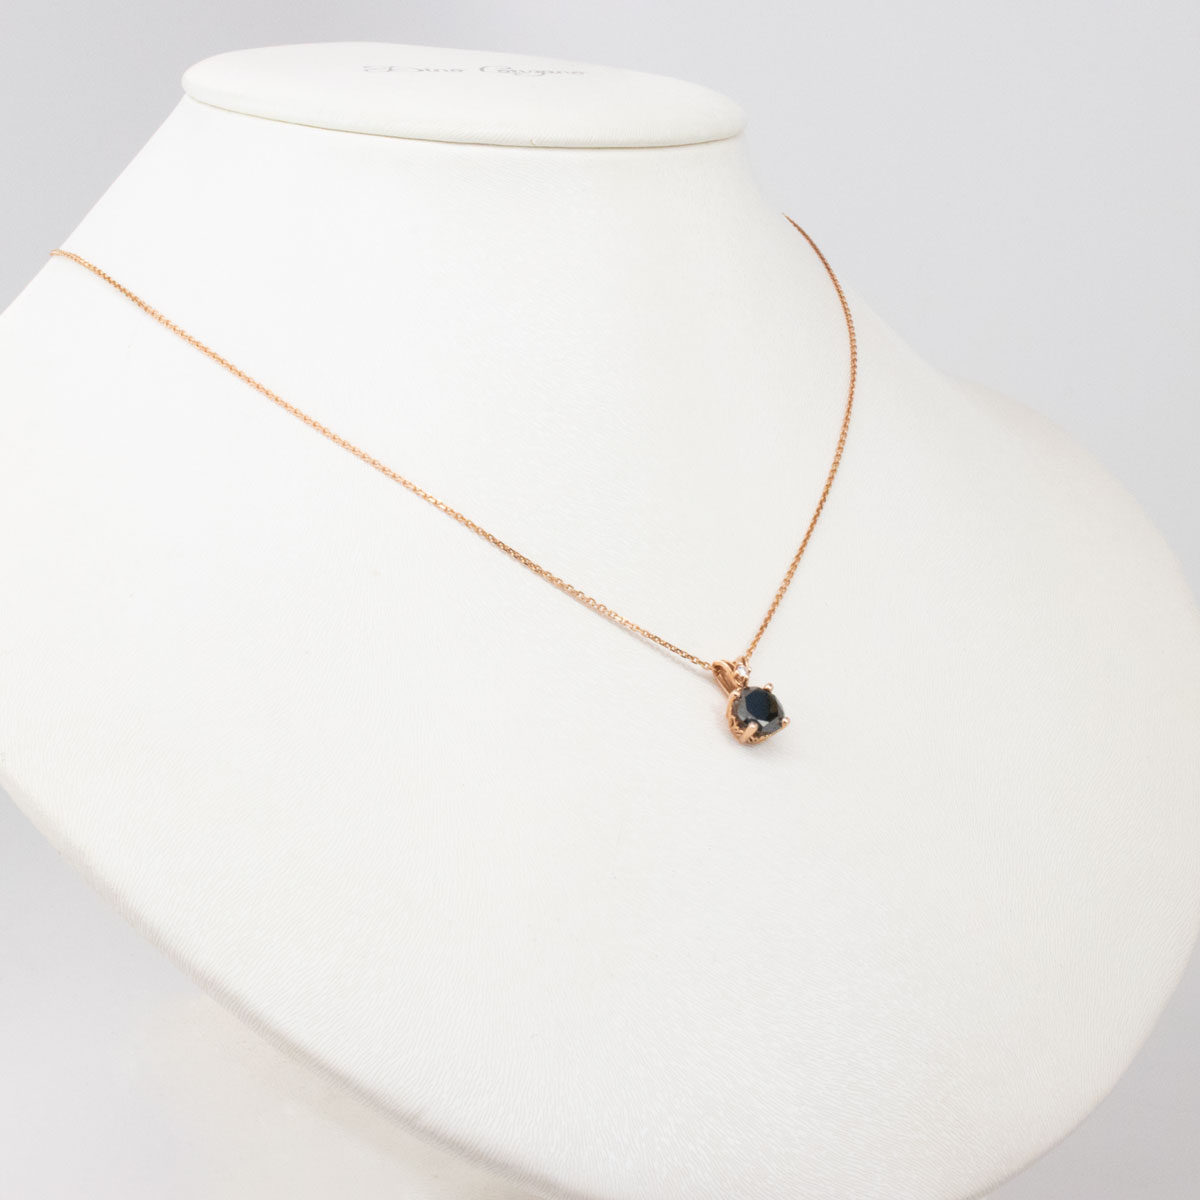 Black Diamond Pendant with Chain, 14k Rose Gold